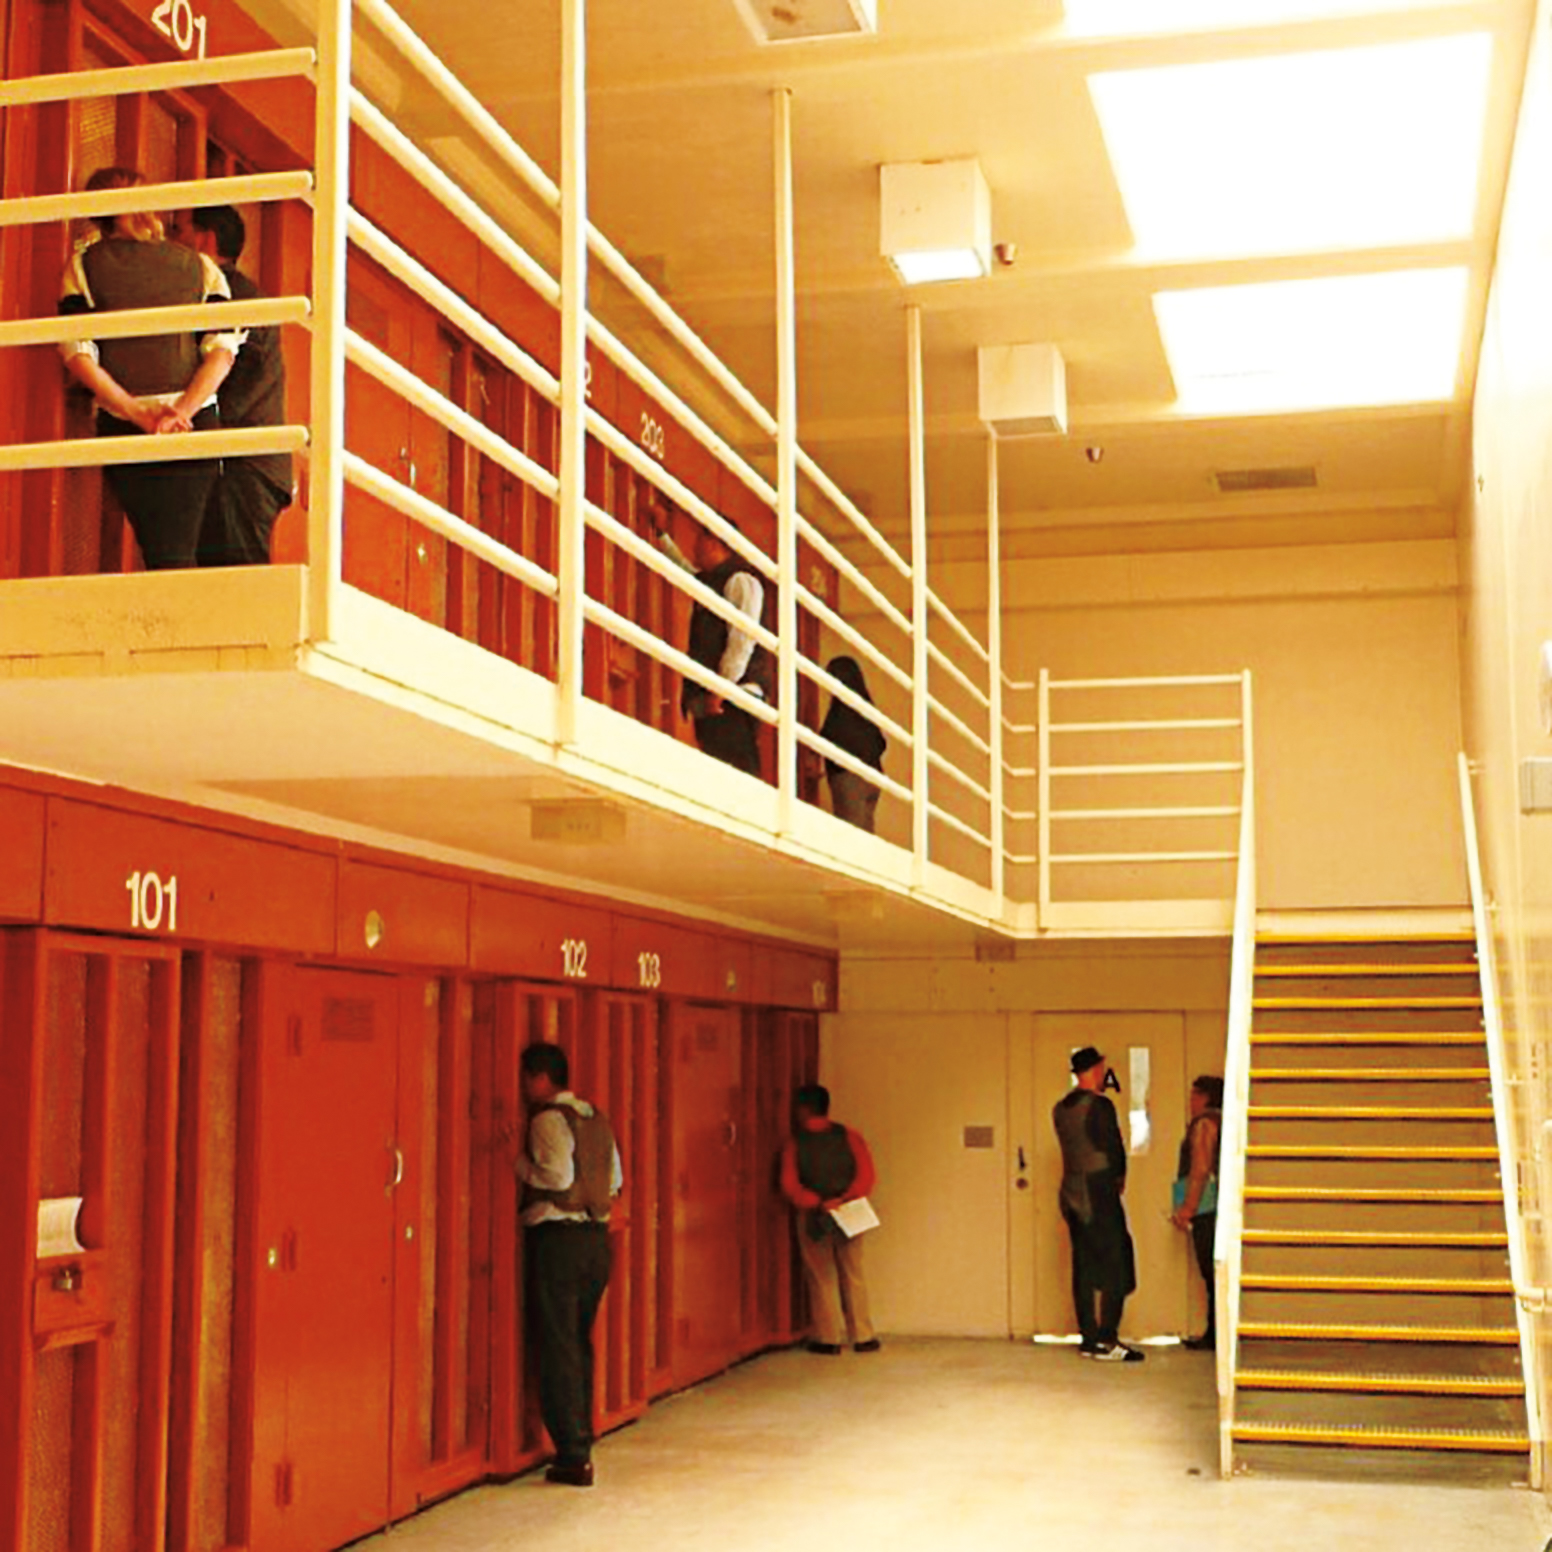 Michael Stubbs '83 exploring the secure housing unit at the Pelican Bay State Supermax Prison in California.